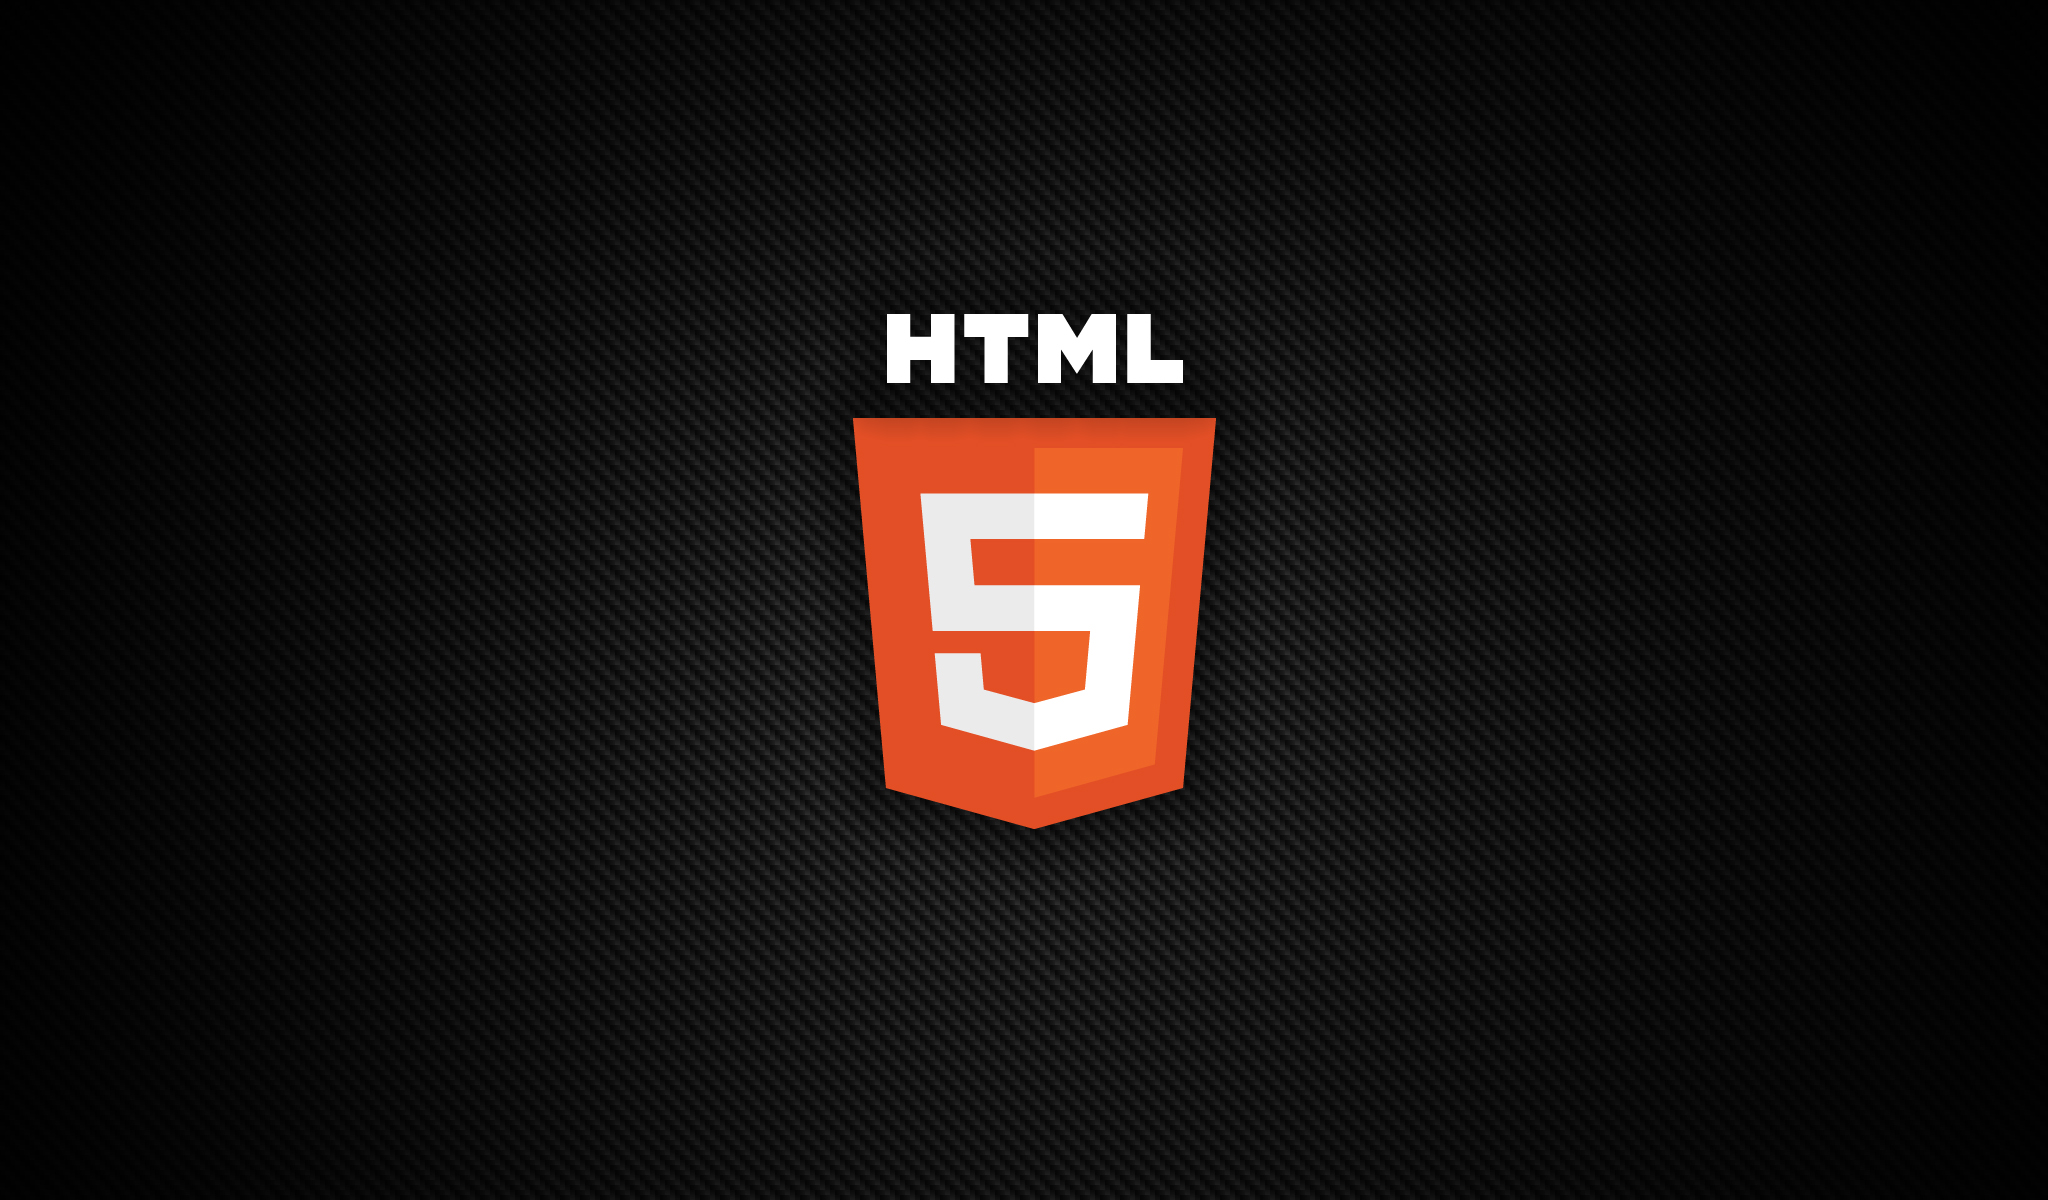 The World Wide Web Consortium Finally Recommends HTML5